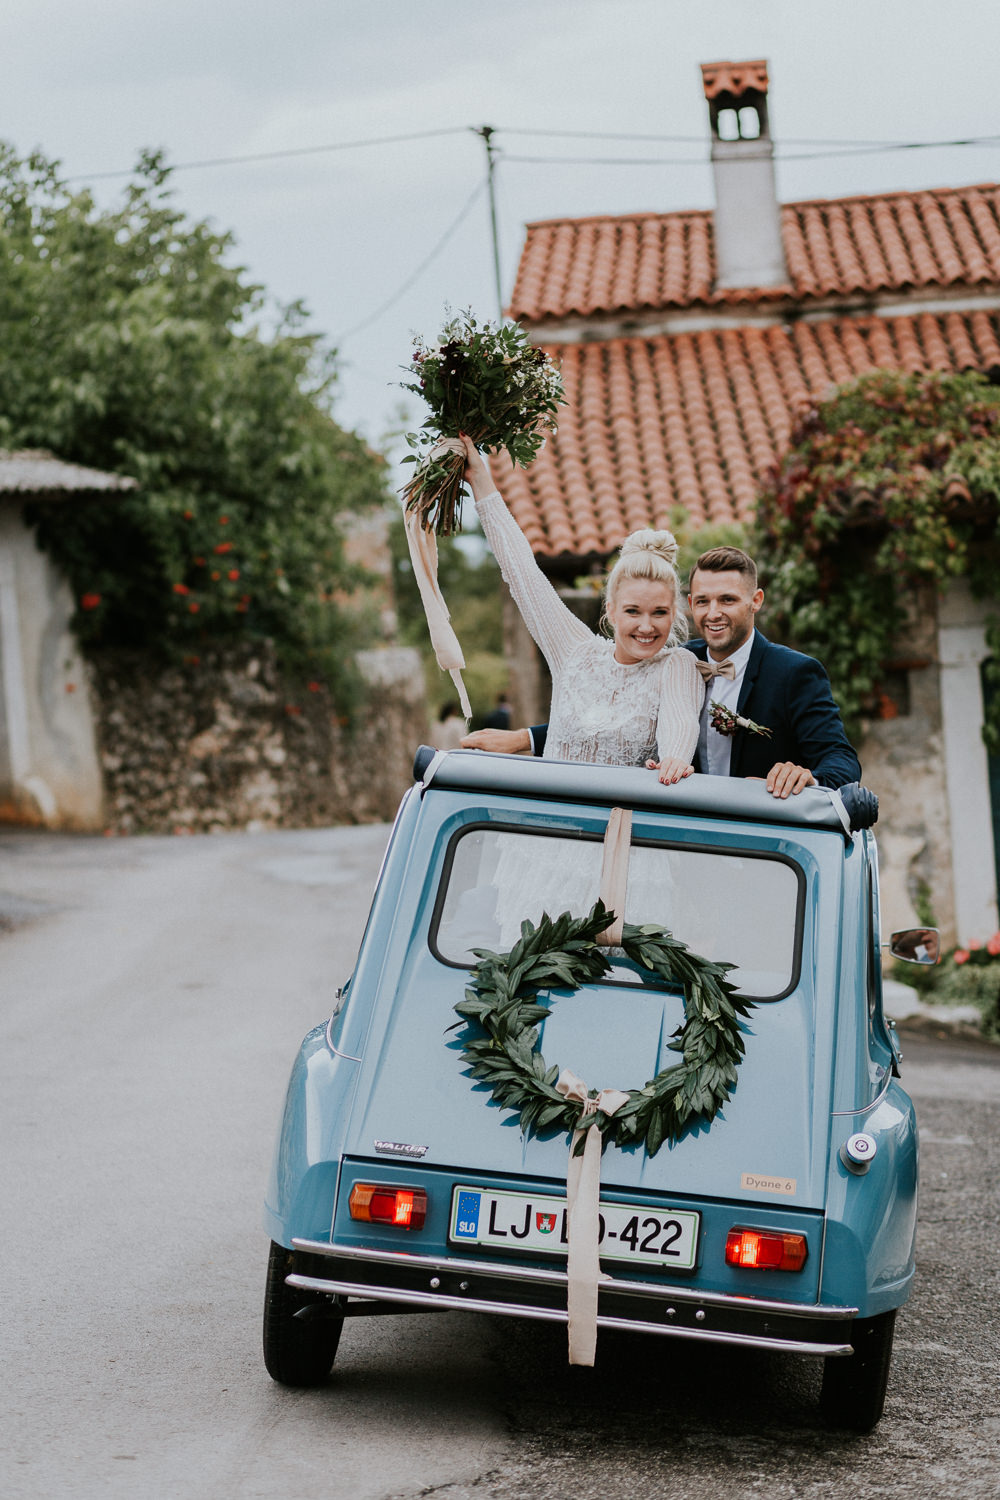 Citreon Car Transport Vintage Blue Wreath Slovenia Wedding Bohemian Maja Tsolo Photography